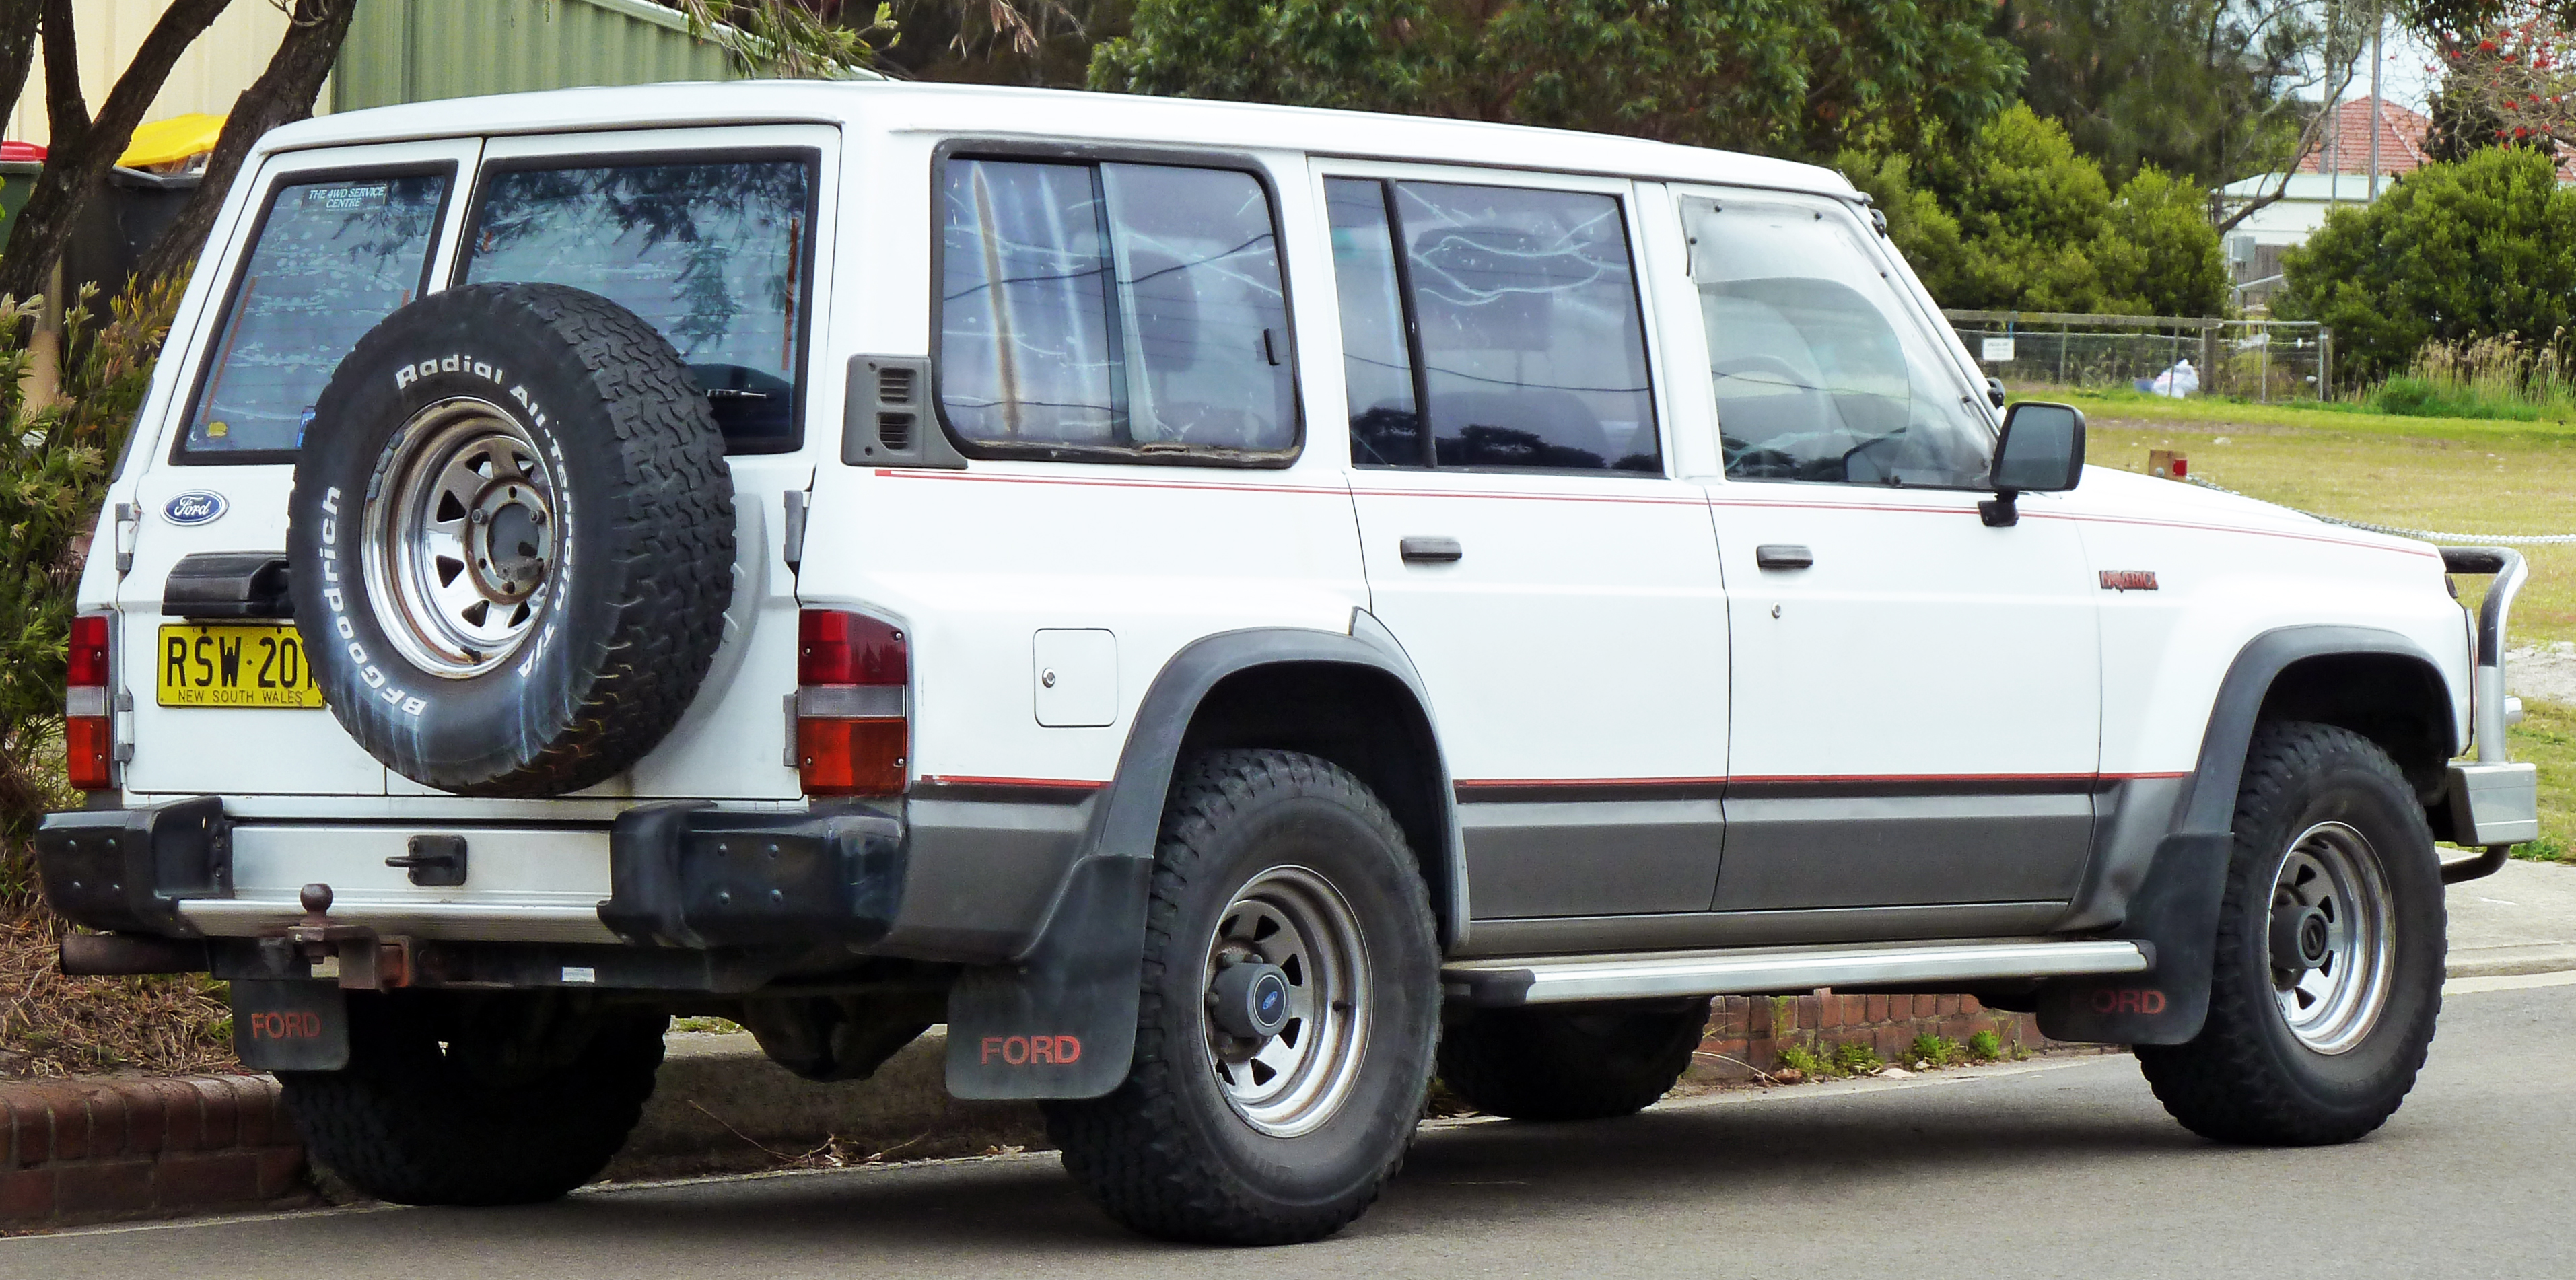 Nissan Safari IV (Y60) 1989 - 1997 SUV 3 door #2